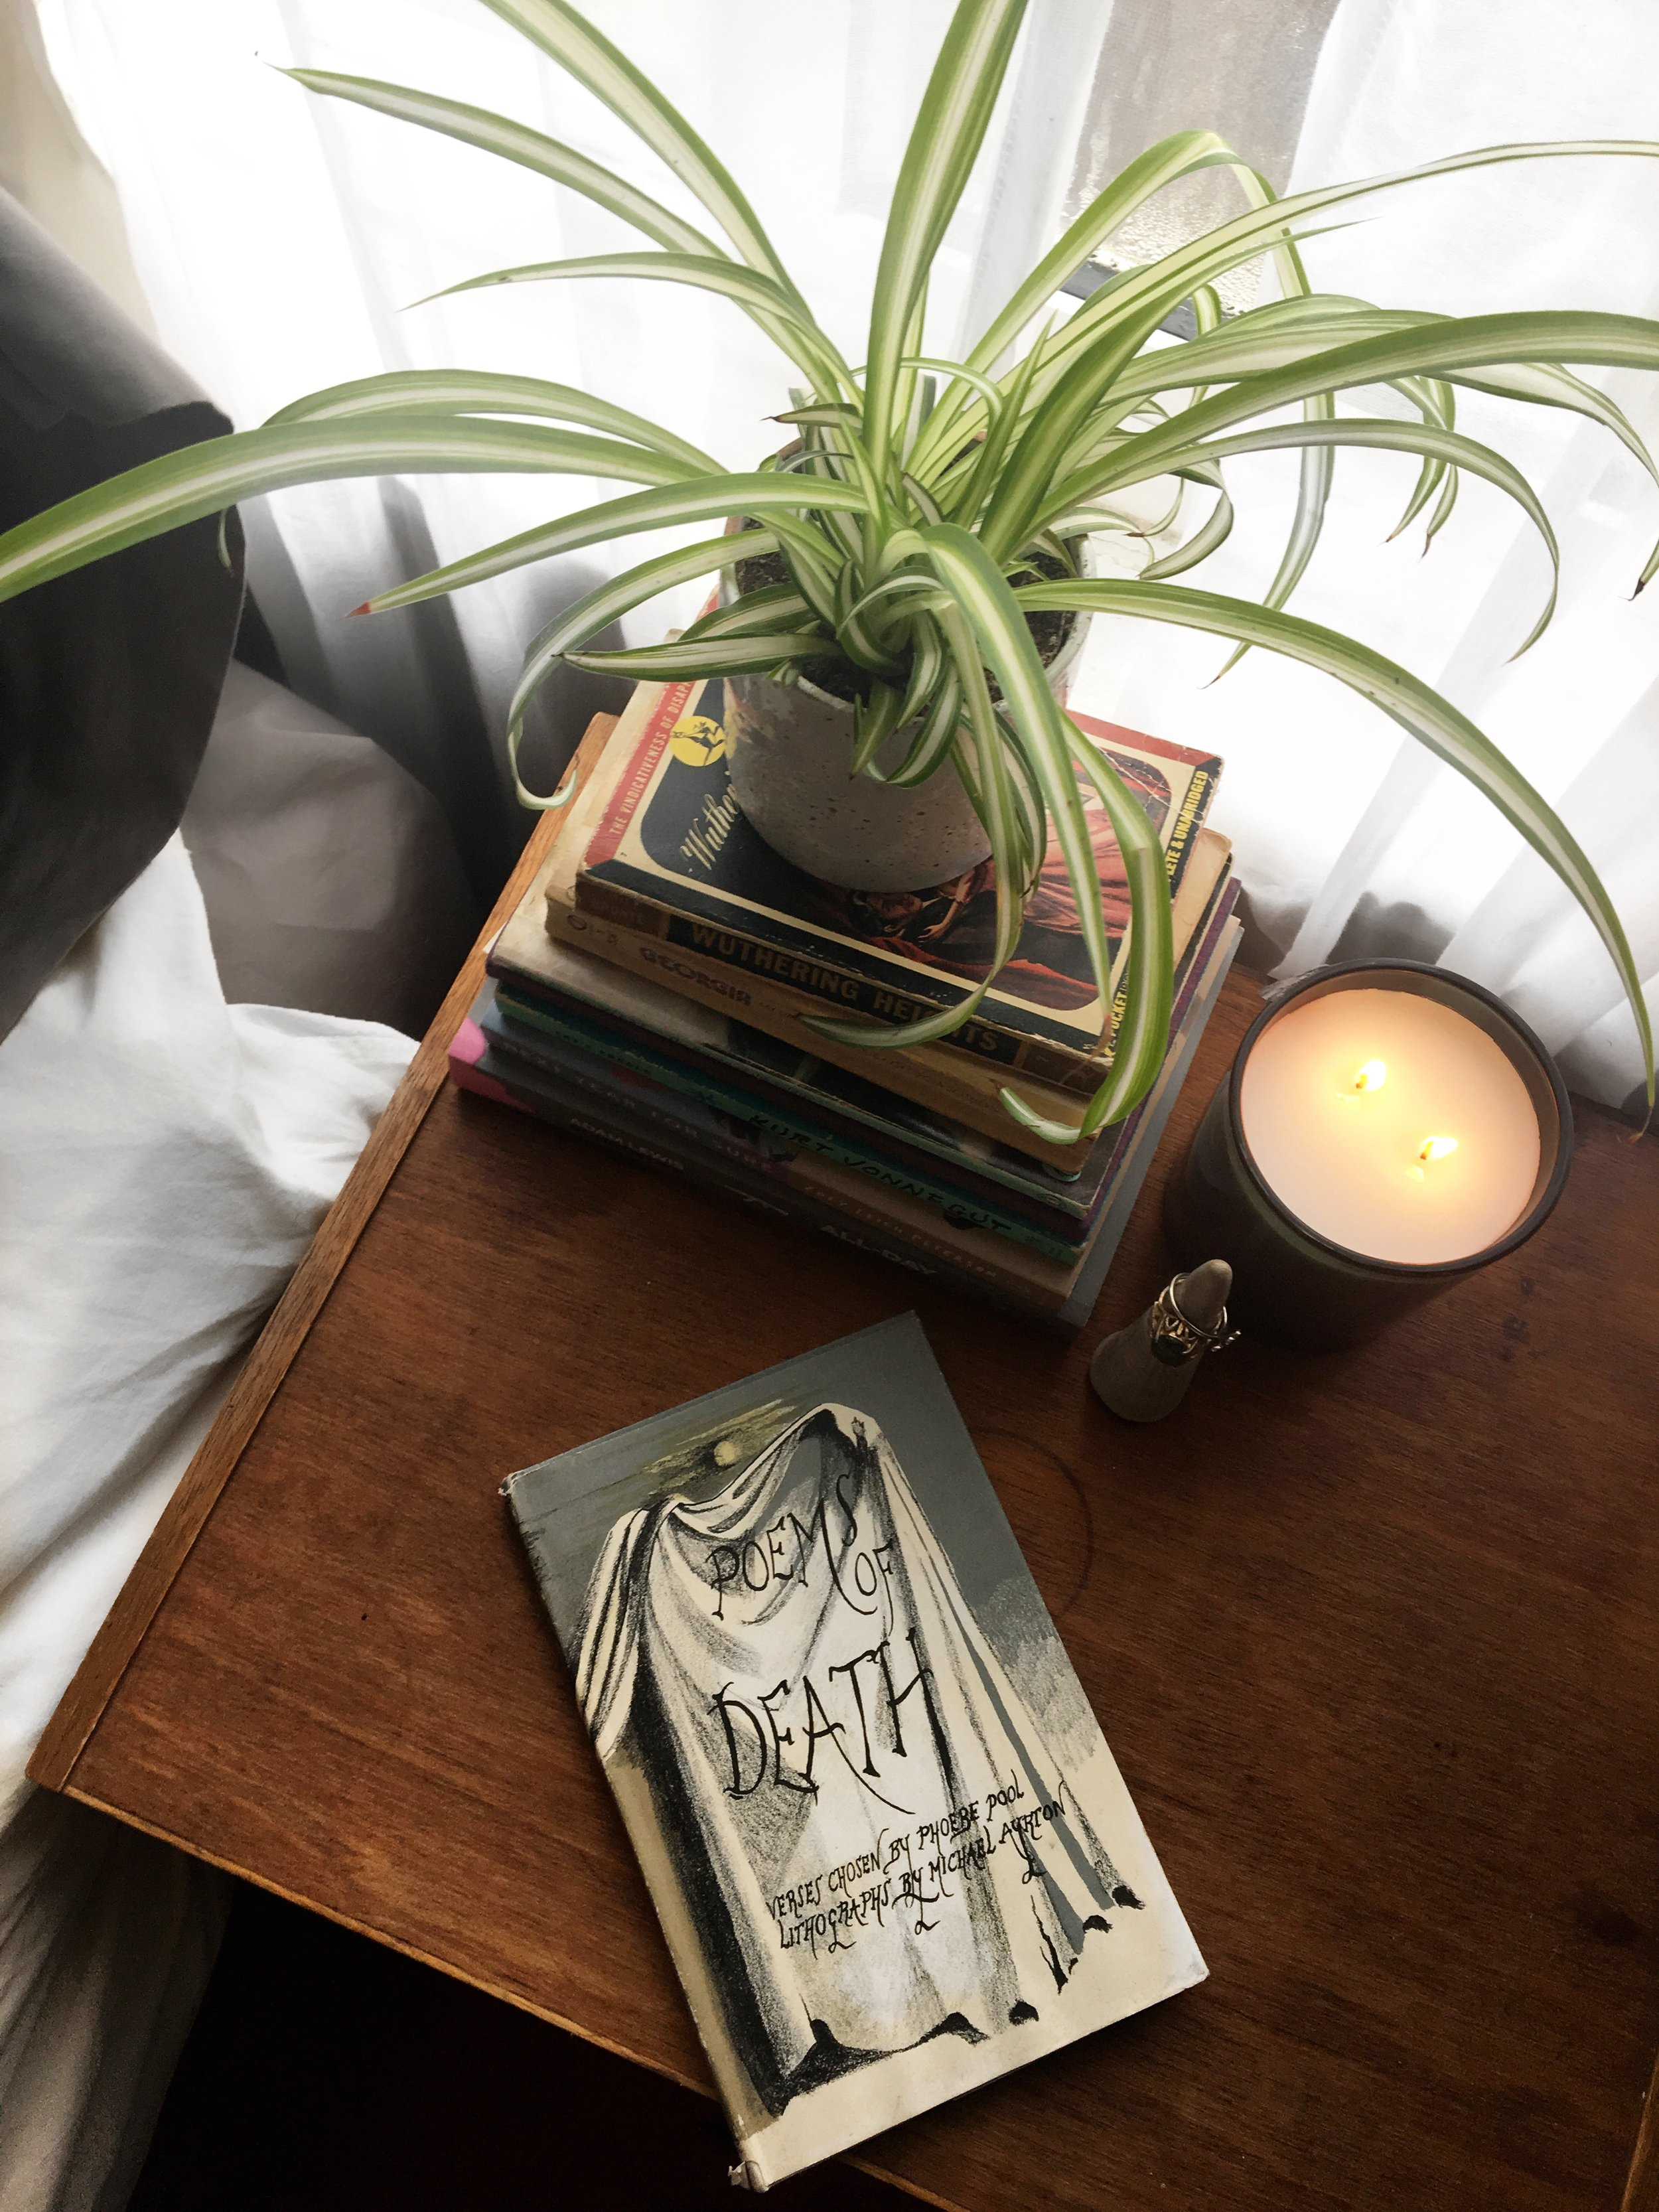 book of death poetry on a bedside table next to a burning candle stack of books spider plant ceramic ring holder lifestyle blogger female blogger feminist blogger Canadian blogger The States of Georgia